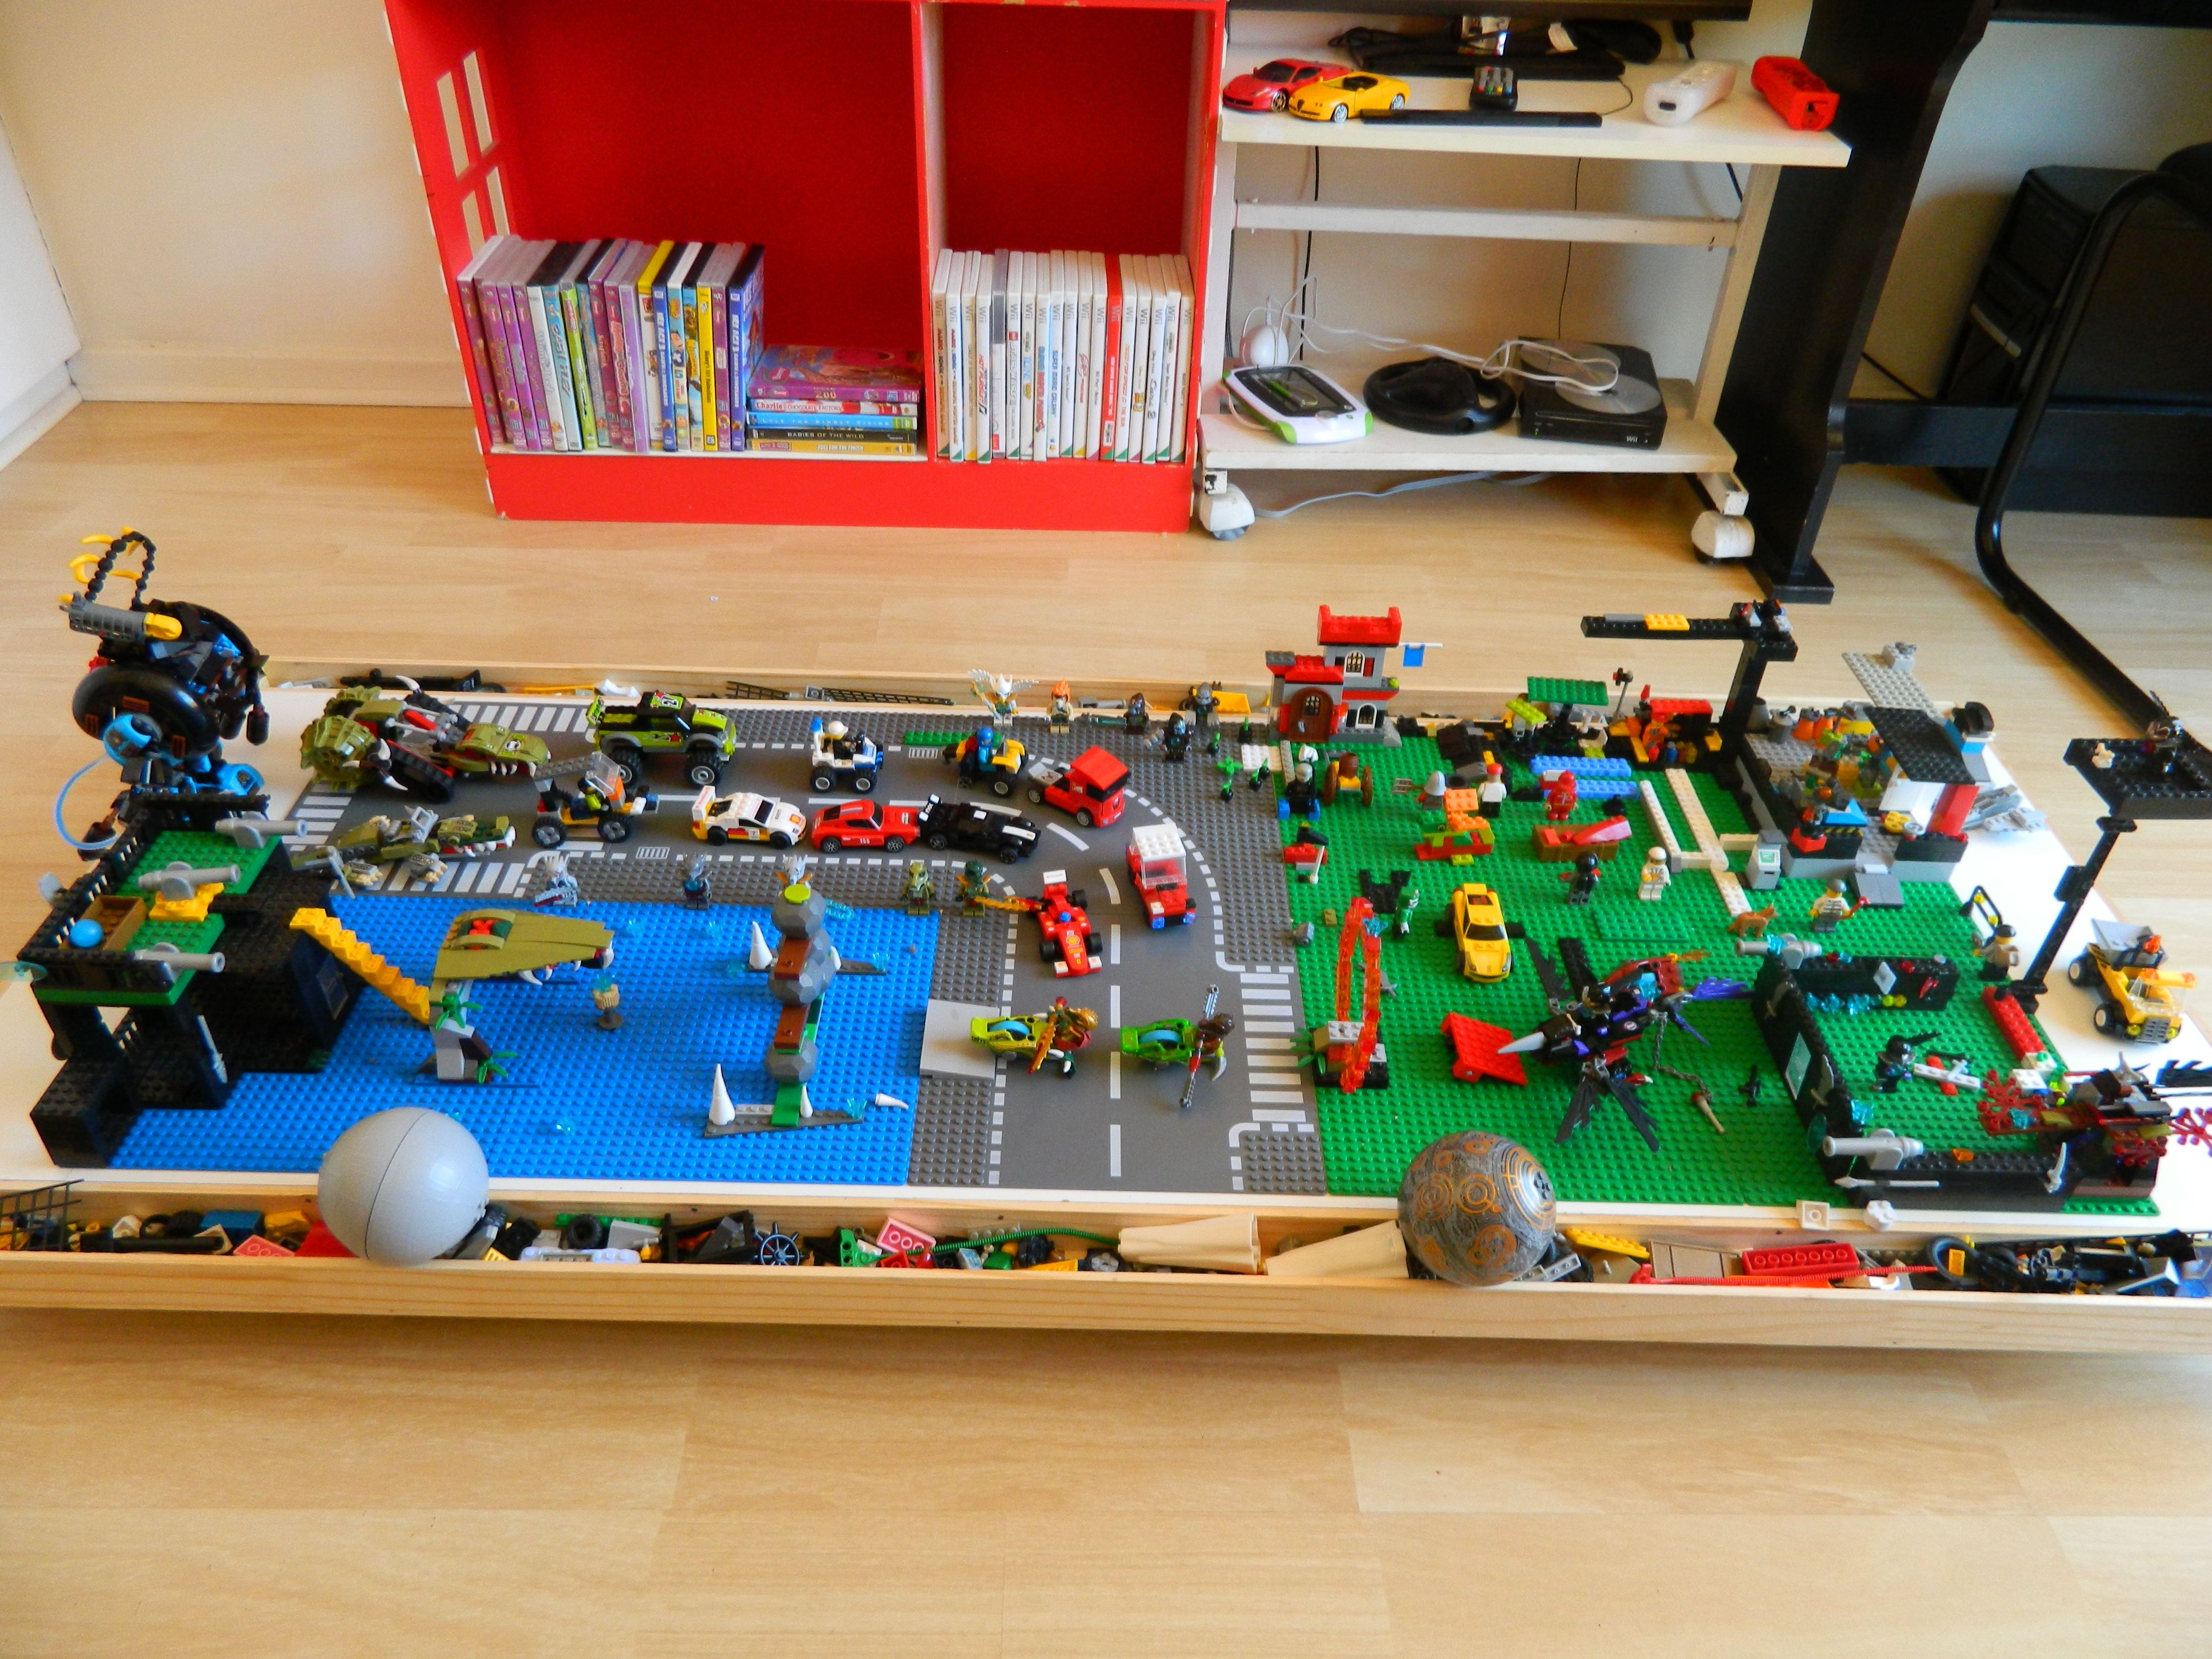 Beau Diy Under Bed Storage Lego Table... Going To Try Fit Gmanu0027s Train Set